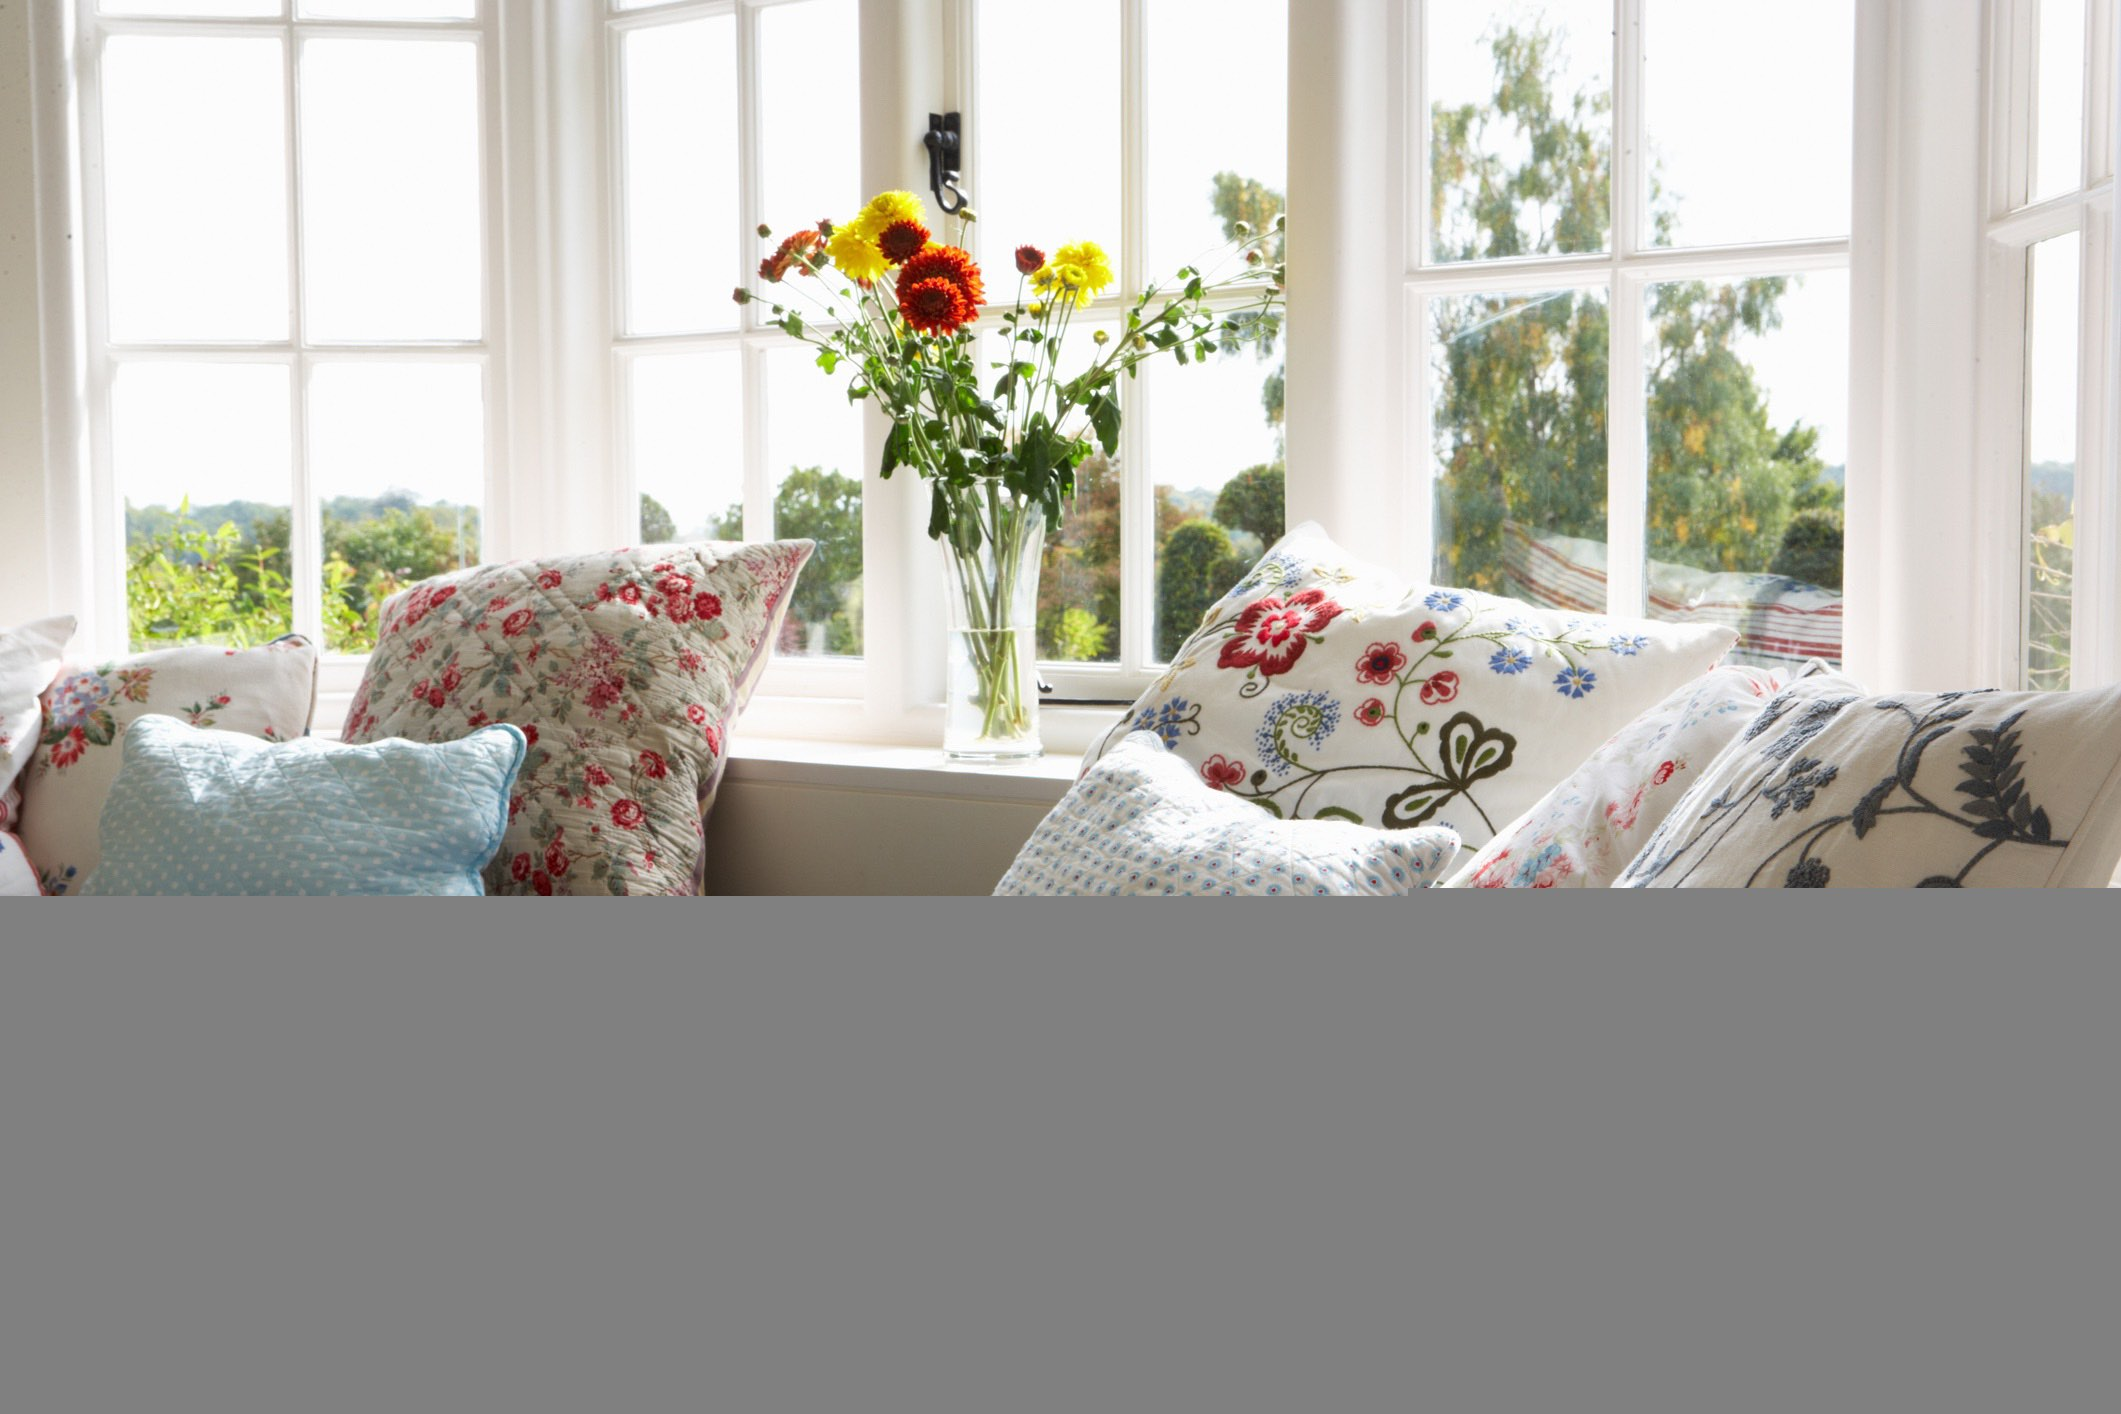 Choosing the right fabric for your box seat cushions